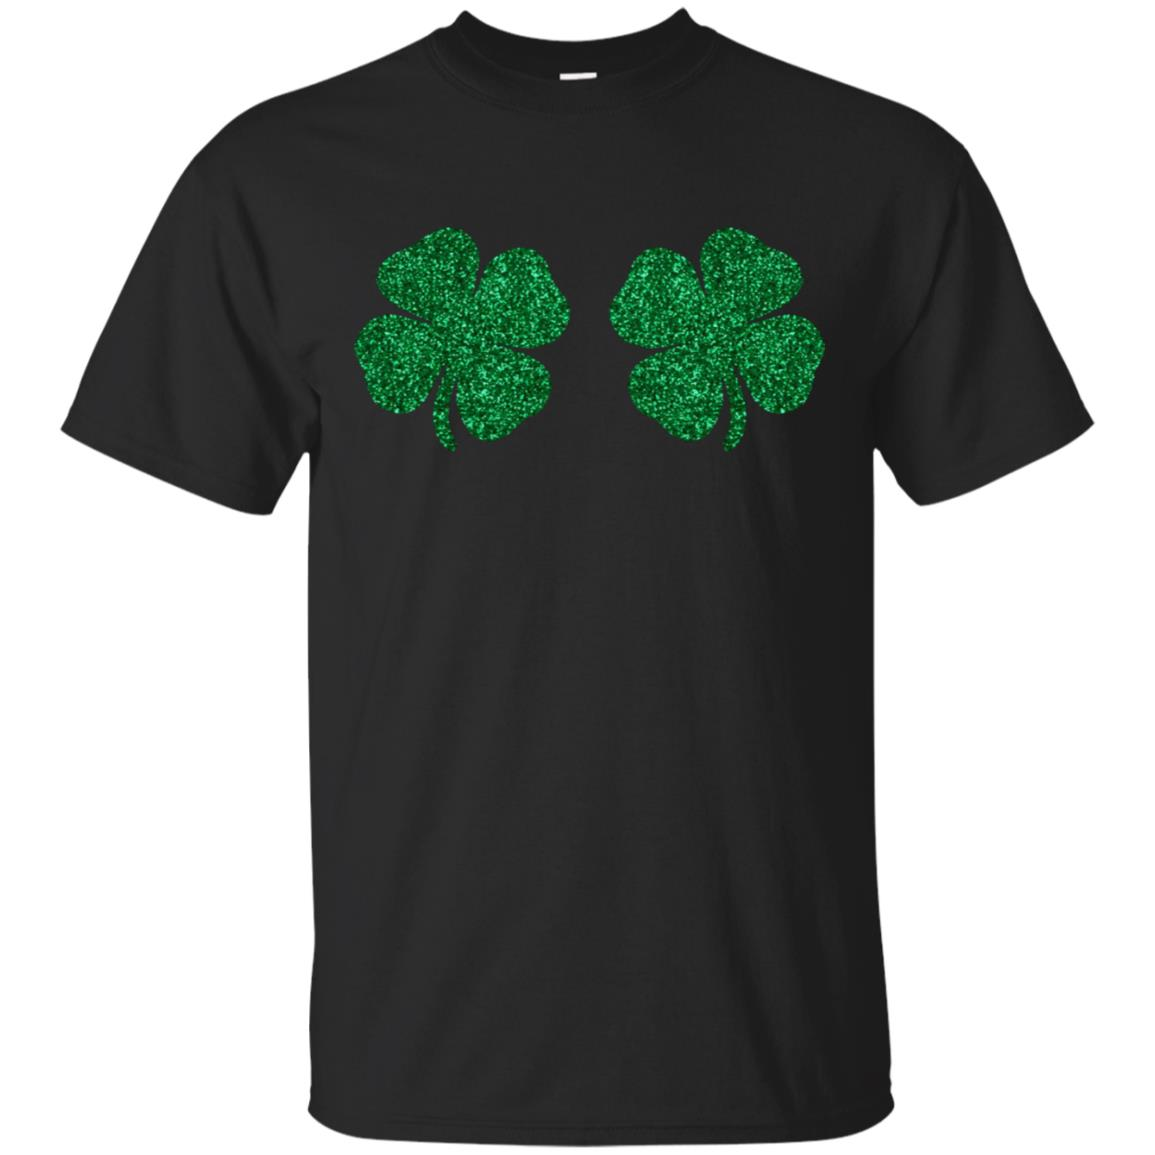 Shamrock Boobs T-Shirt 99promocode